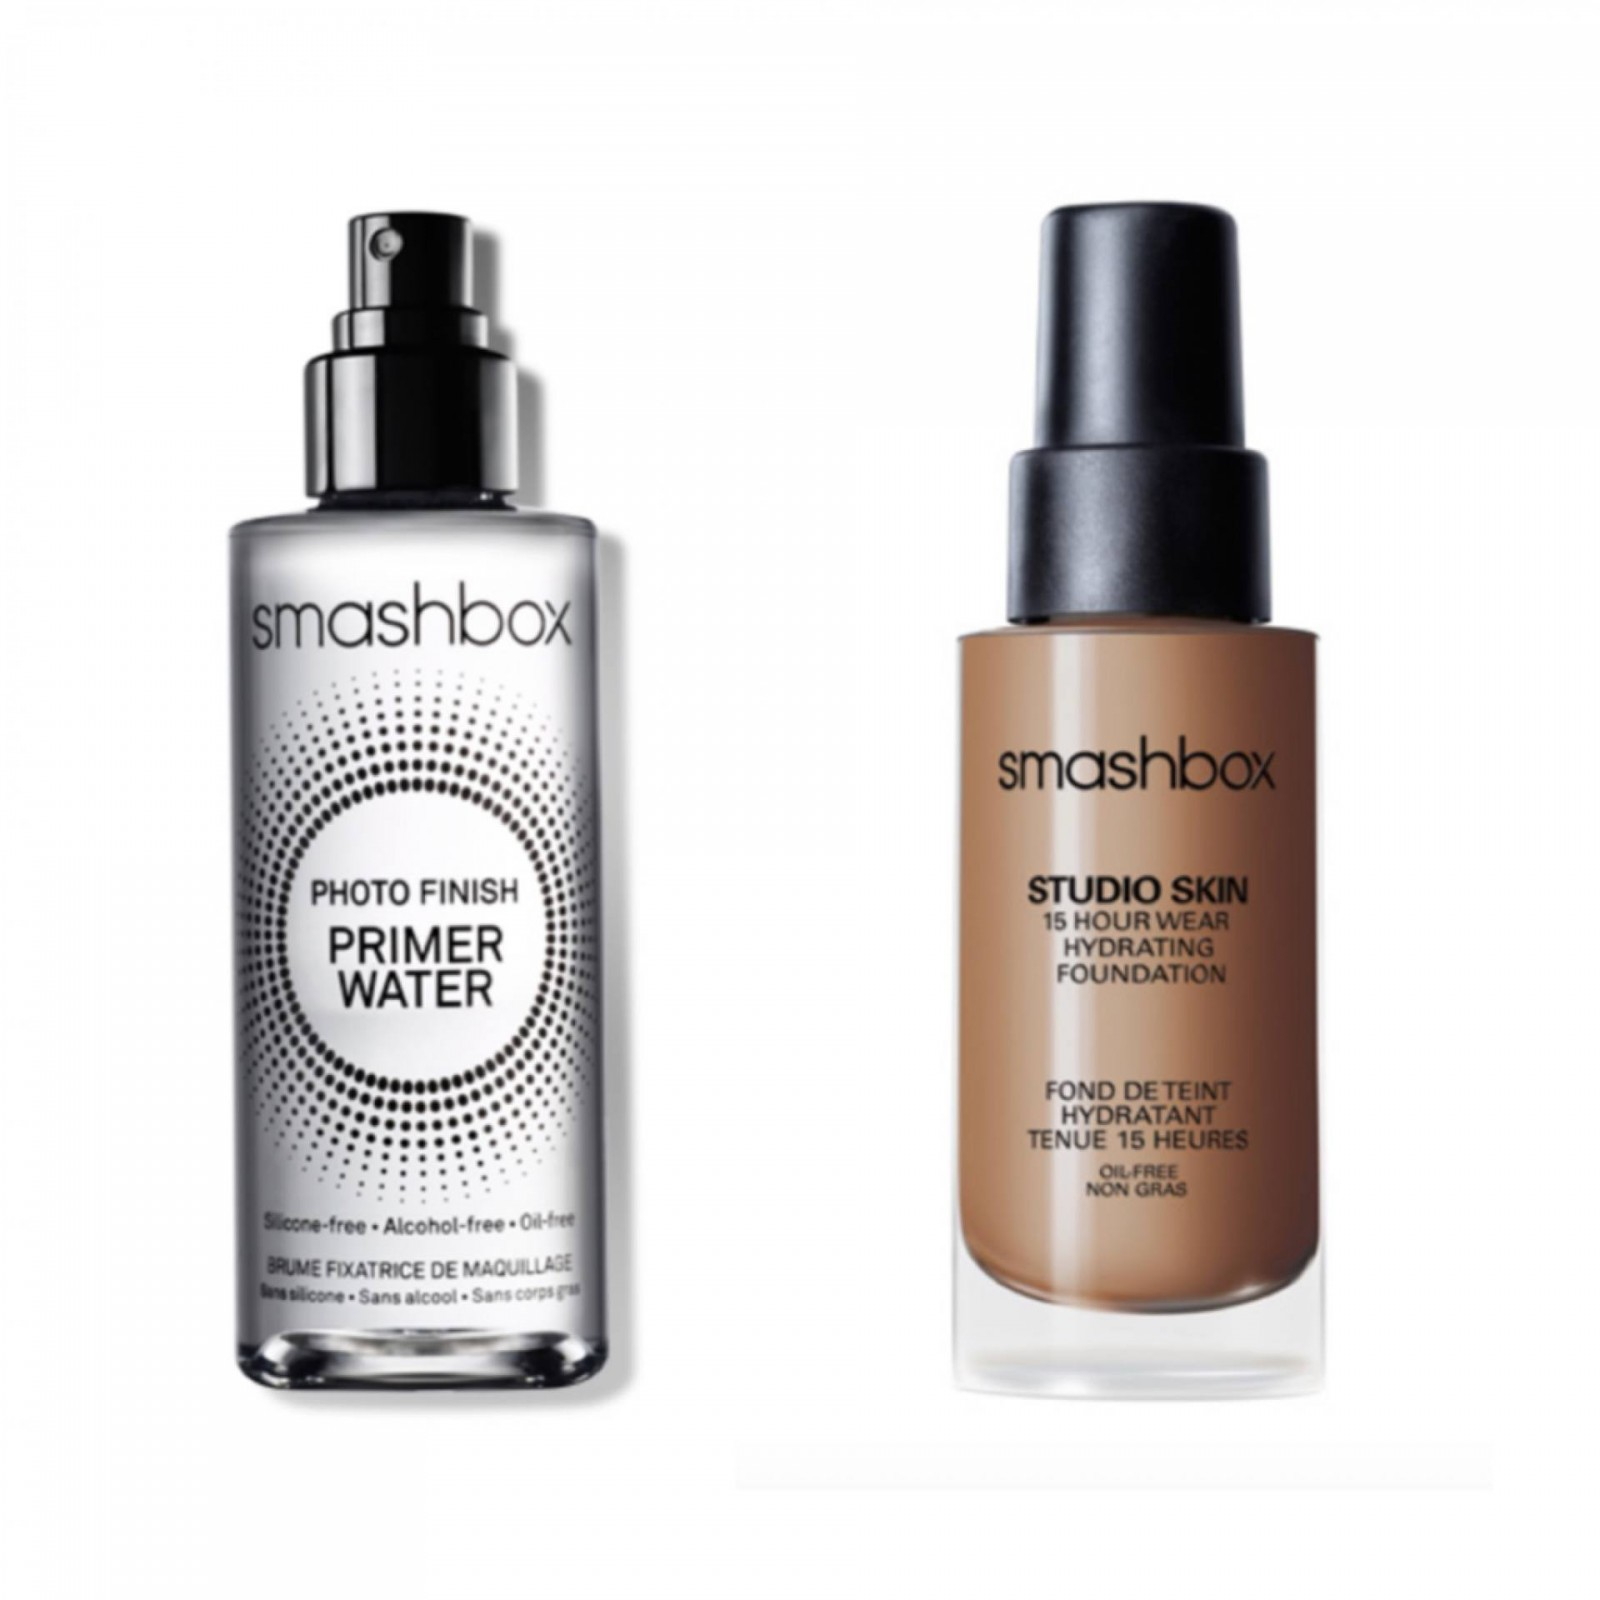 Smashbox Photo Finish Primer Water and Studio Skin 15 Hour Wear Foundation